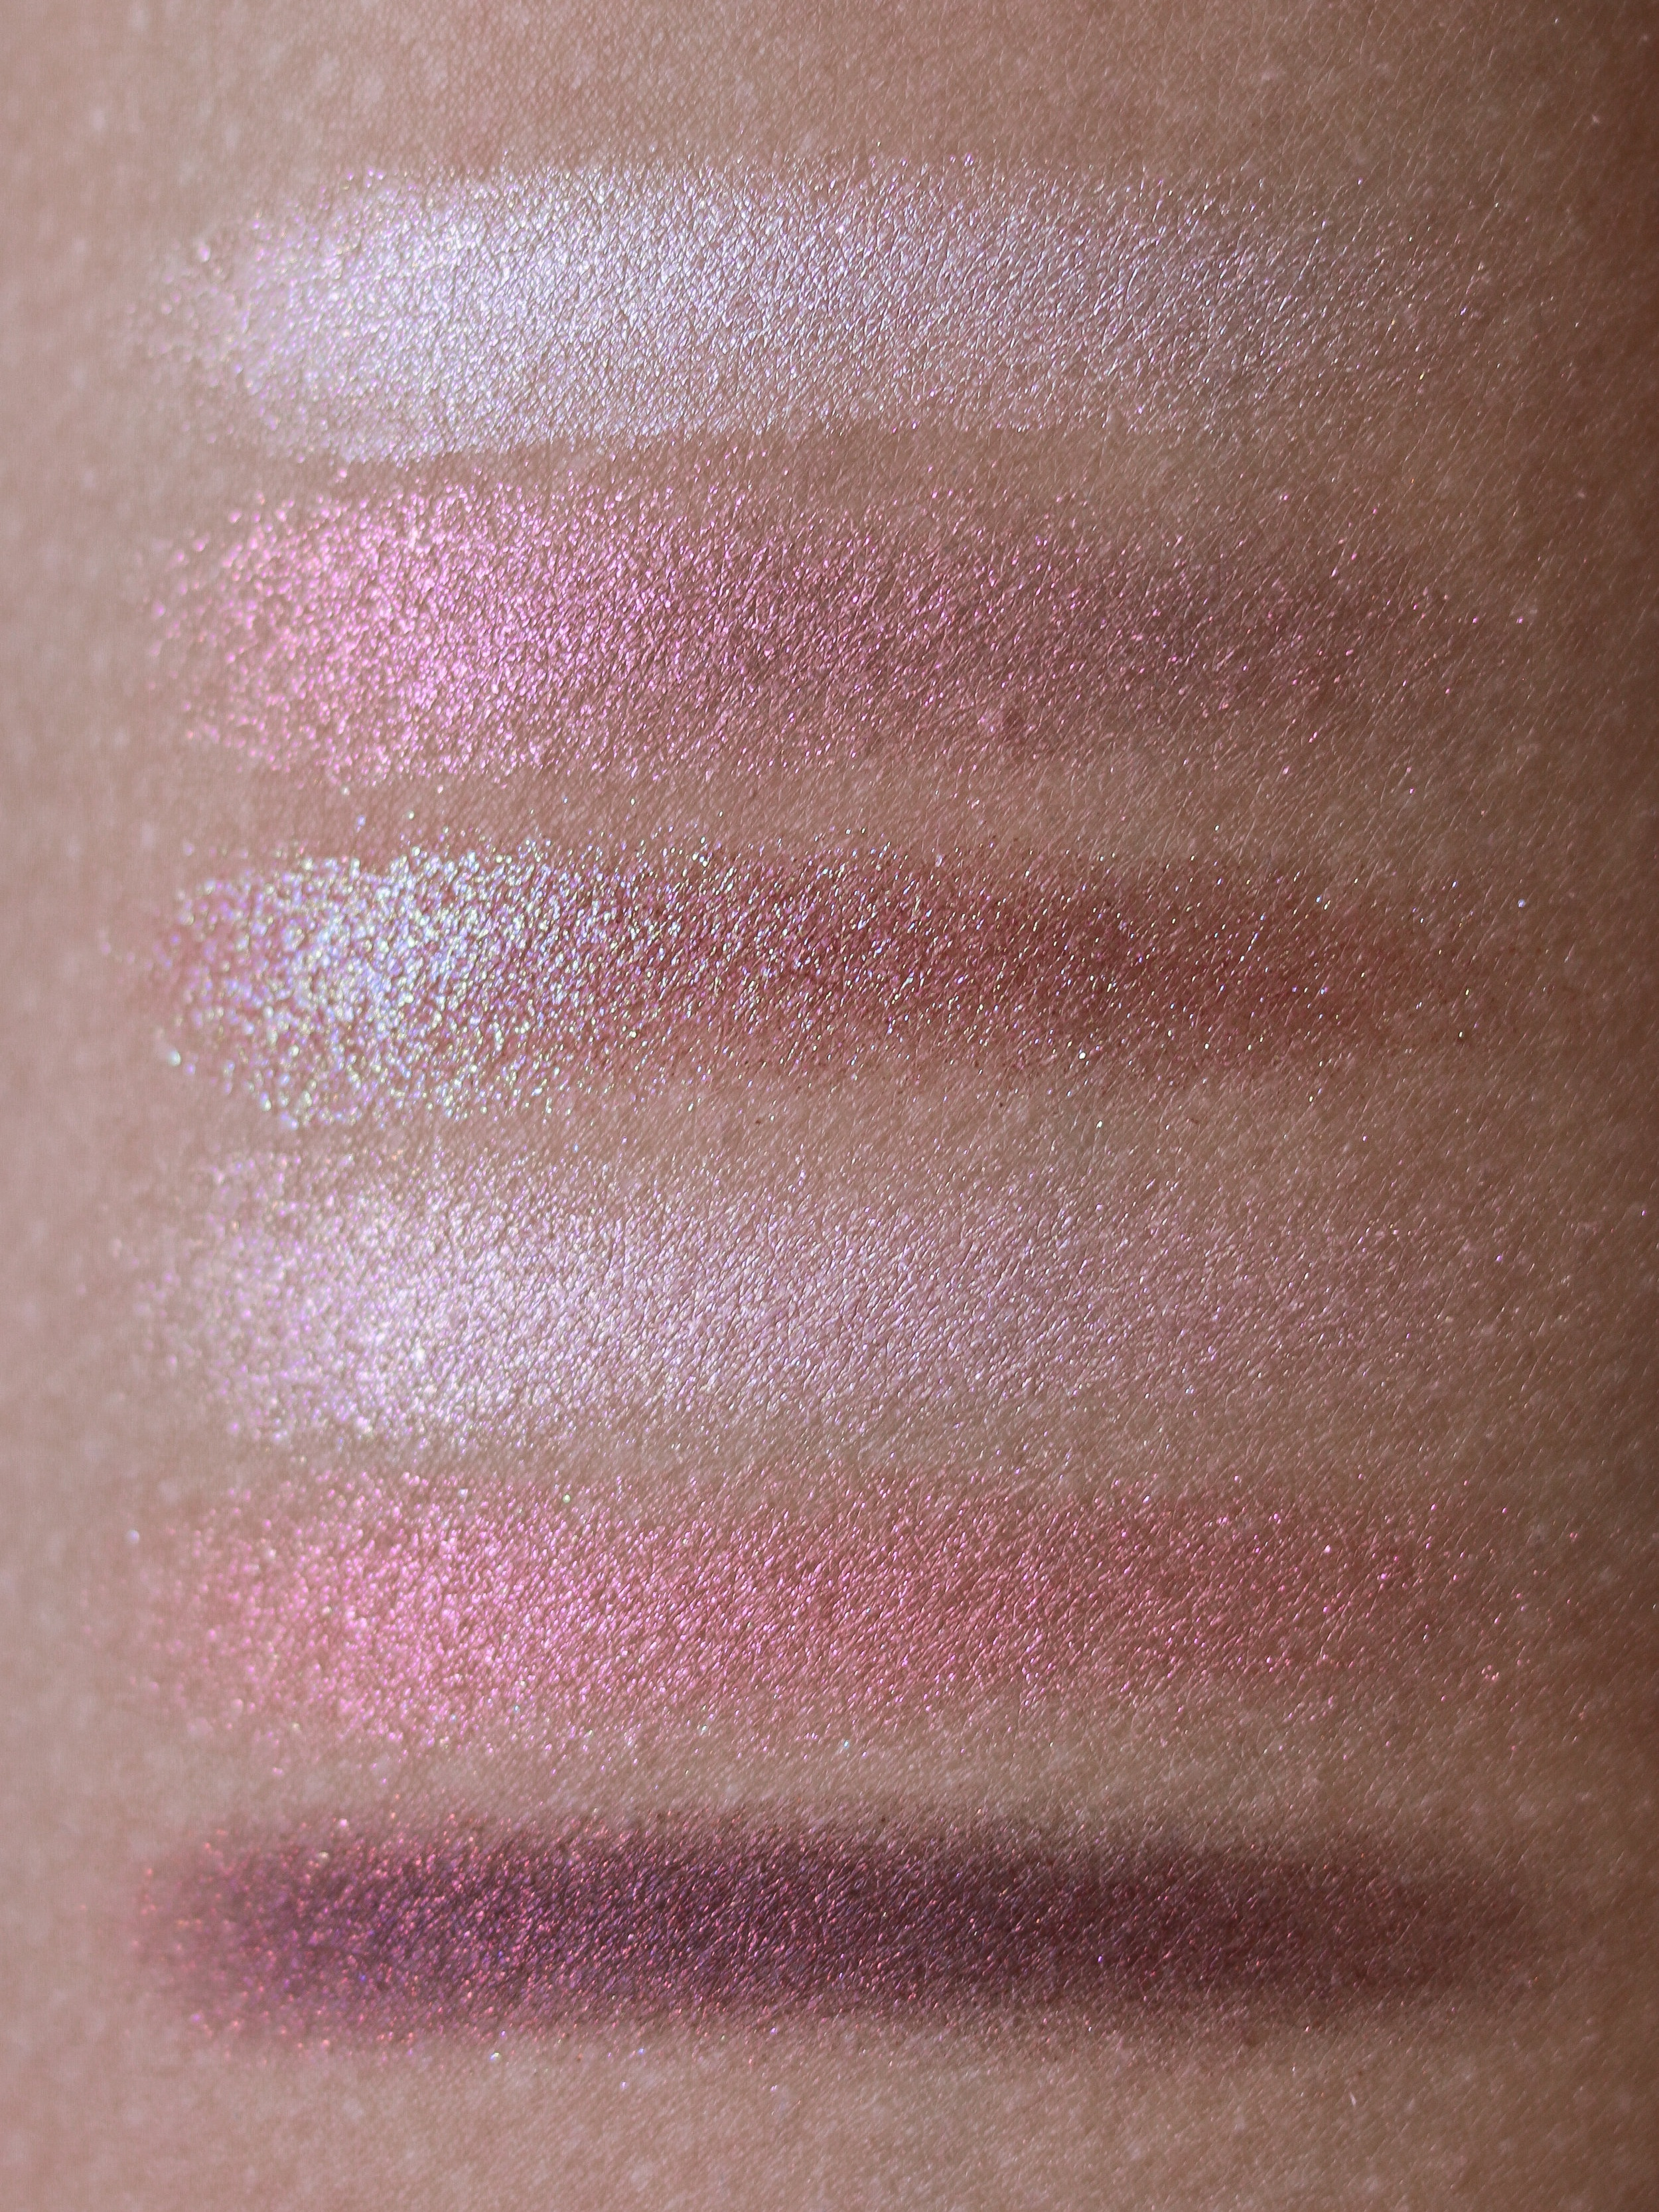 From top to bottom: Light Up, In Heat, Fuse, Atomic, Ignition, Pointe Noir.